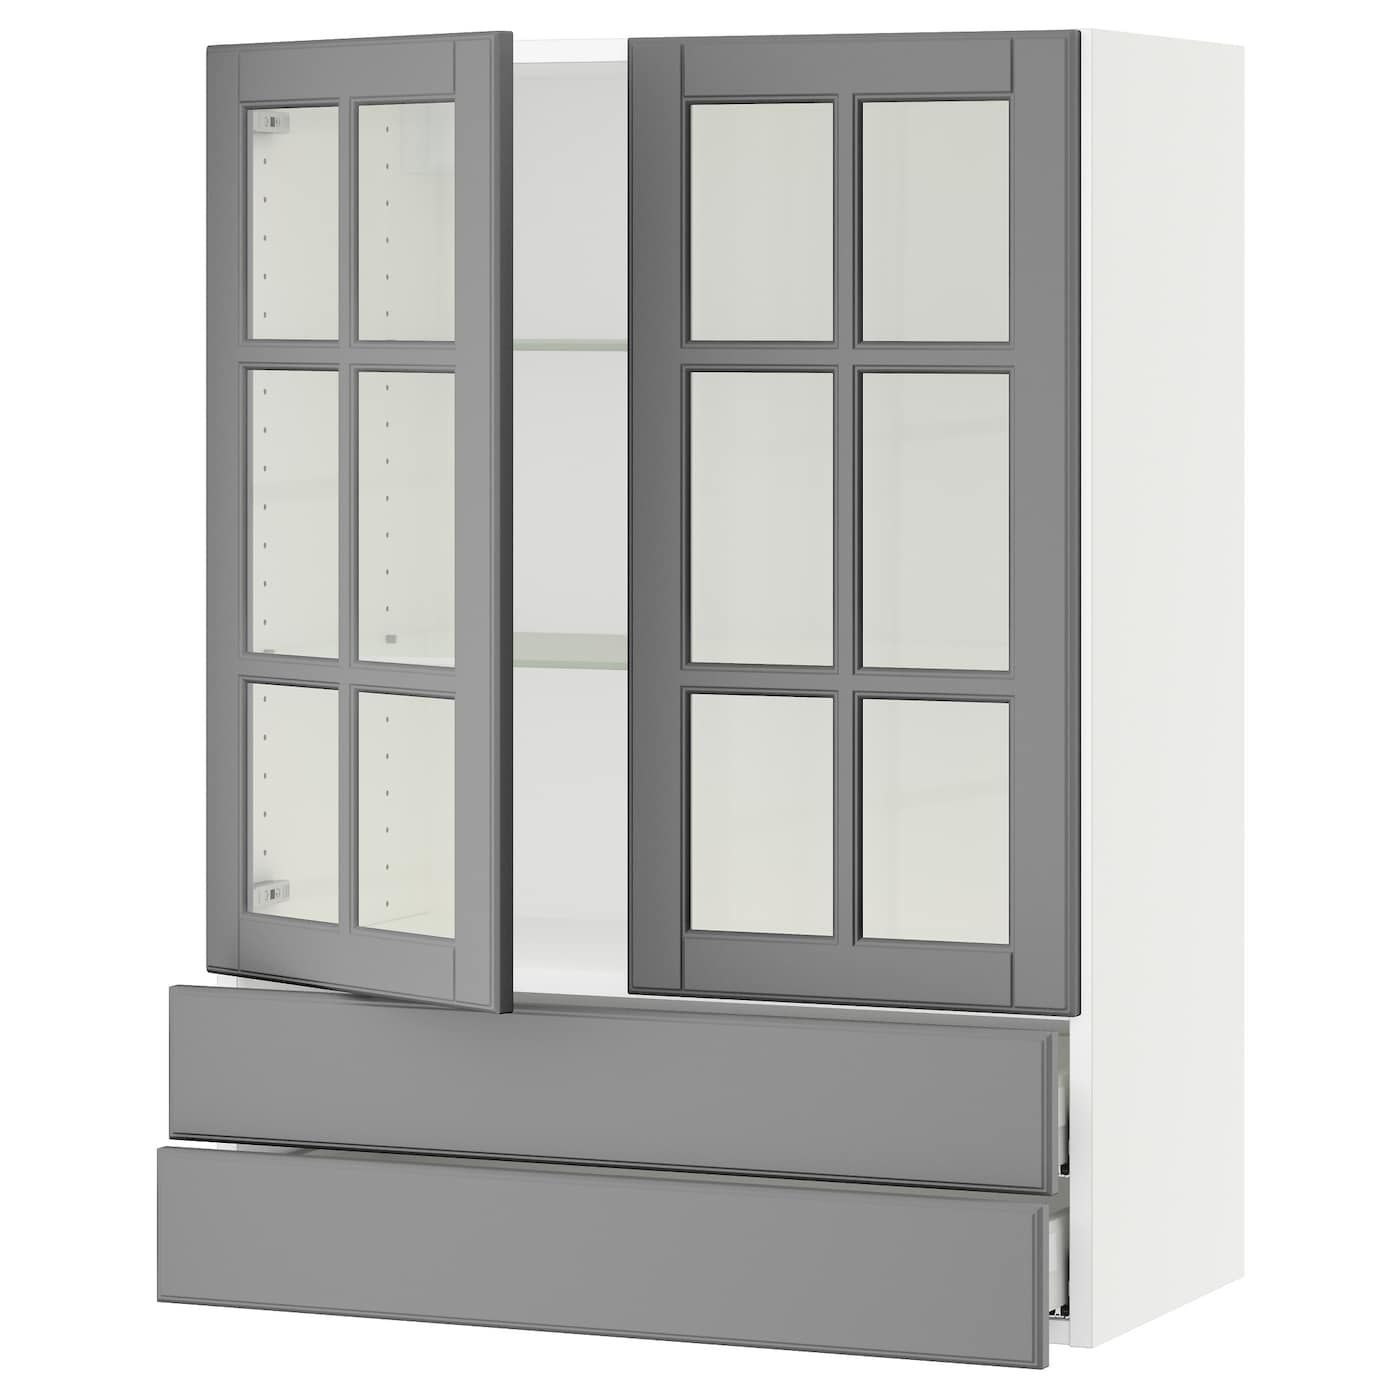 Ikea Sektion White Wall Cabinet 2 Glass Doors 2drawers Frame Colour Glass Door Ikea Ikea Kitchen Design